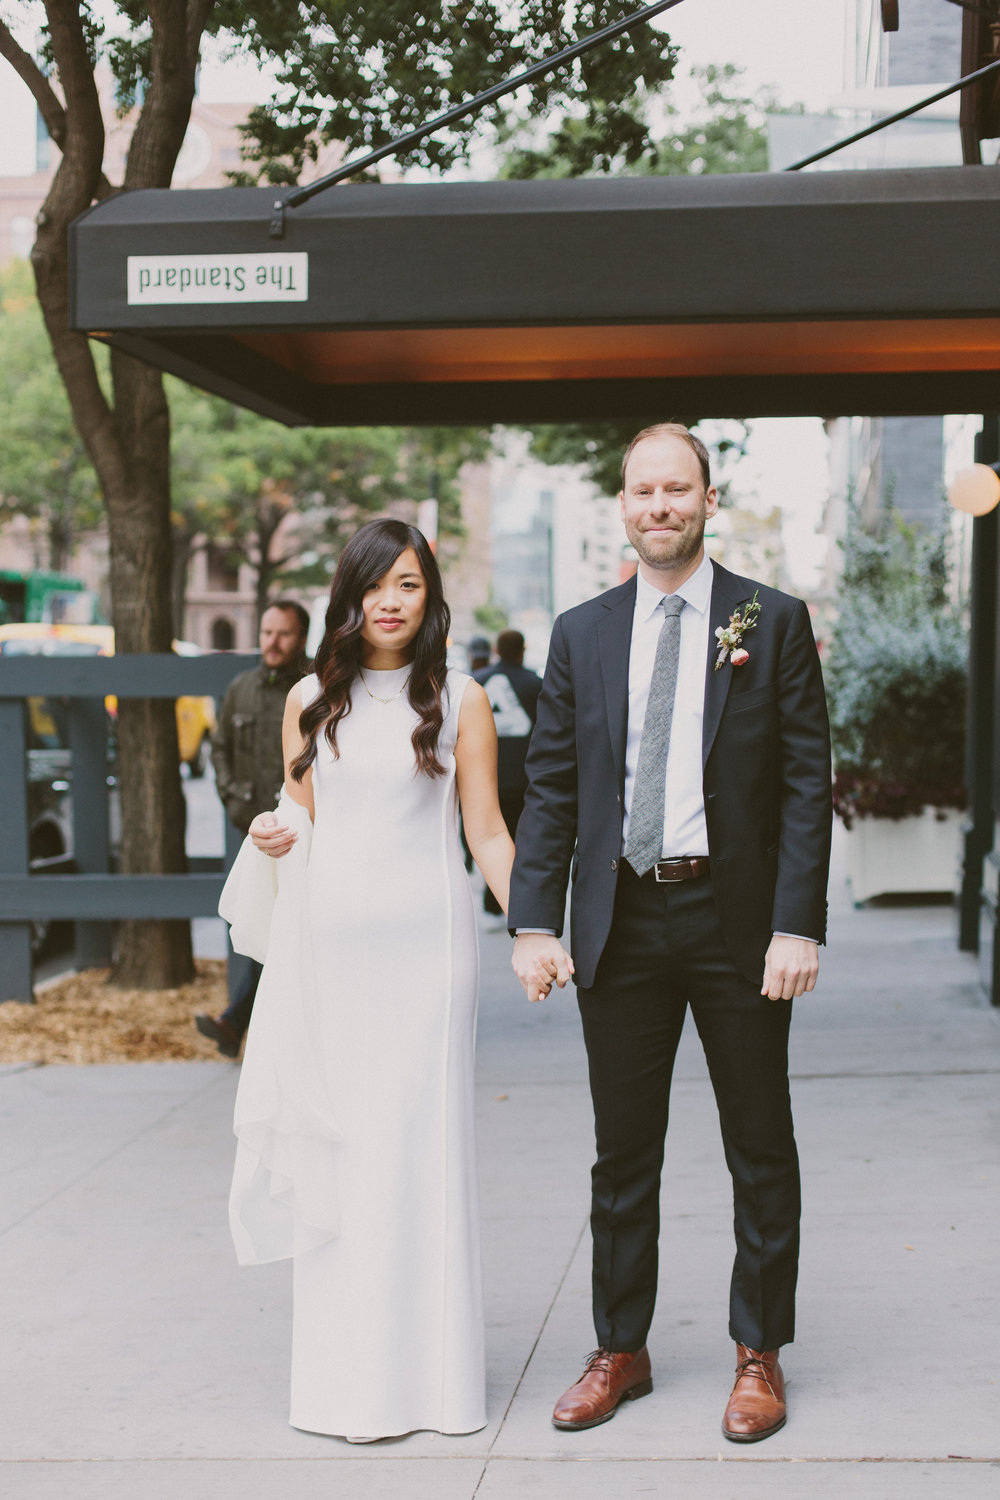 - KRISTINA + ROYTIED THE KNOT: October 17th, 2015VENUE: Marble Cemetery, New York, NY and Chinatown, NYOUR FAVORITE PART: Unconventional Ceremony SettingYou guys absolutely rocked it! We couldn't have been happier. Thanks so much for making it all feel like a walk in the park.Image: City Love Photography